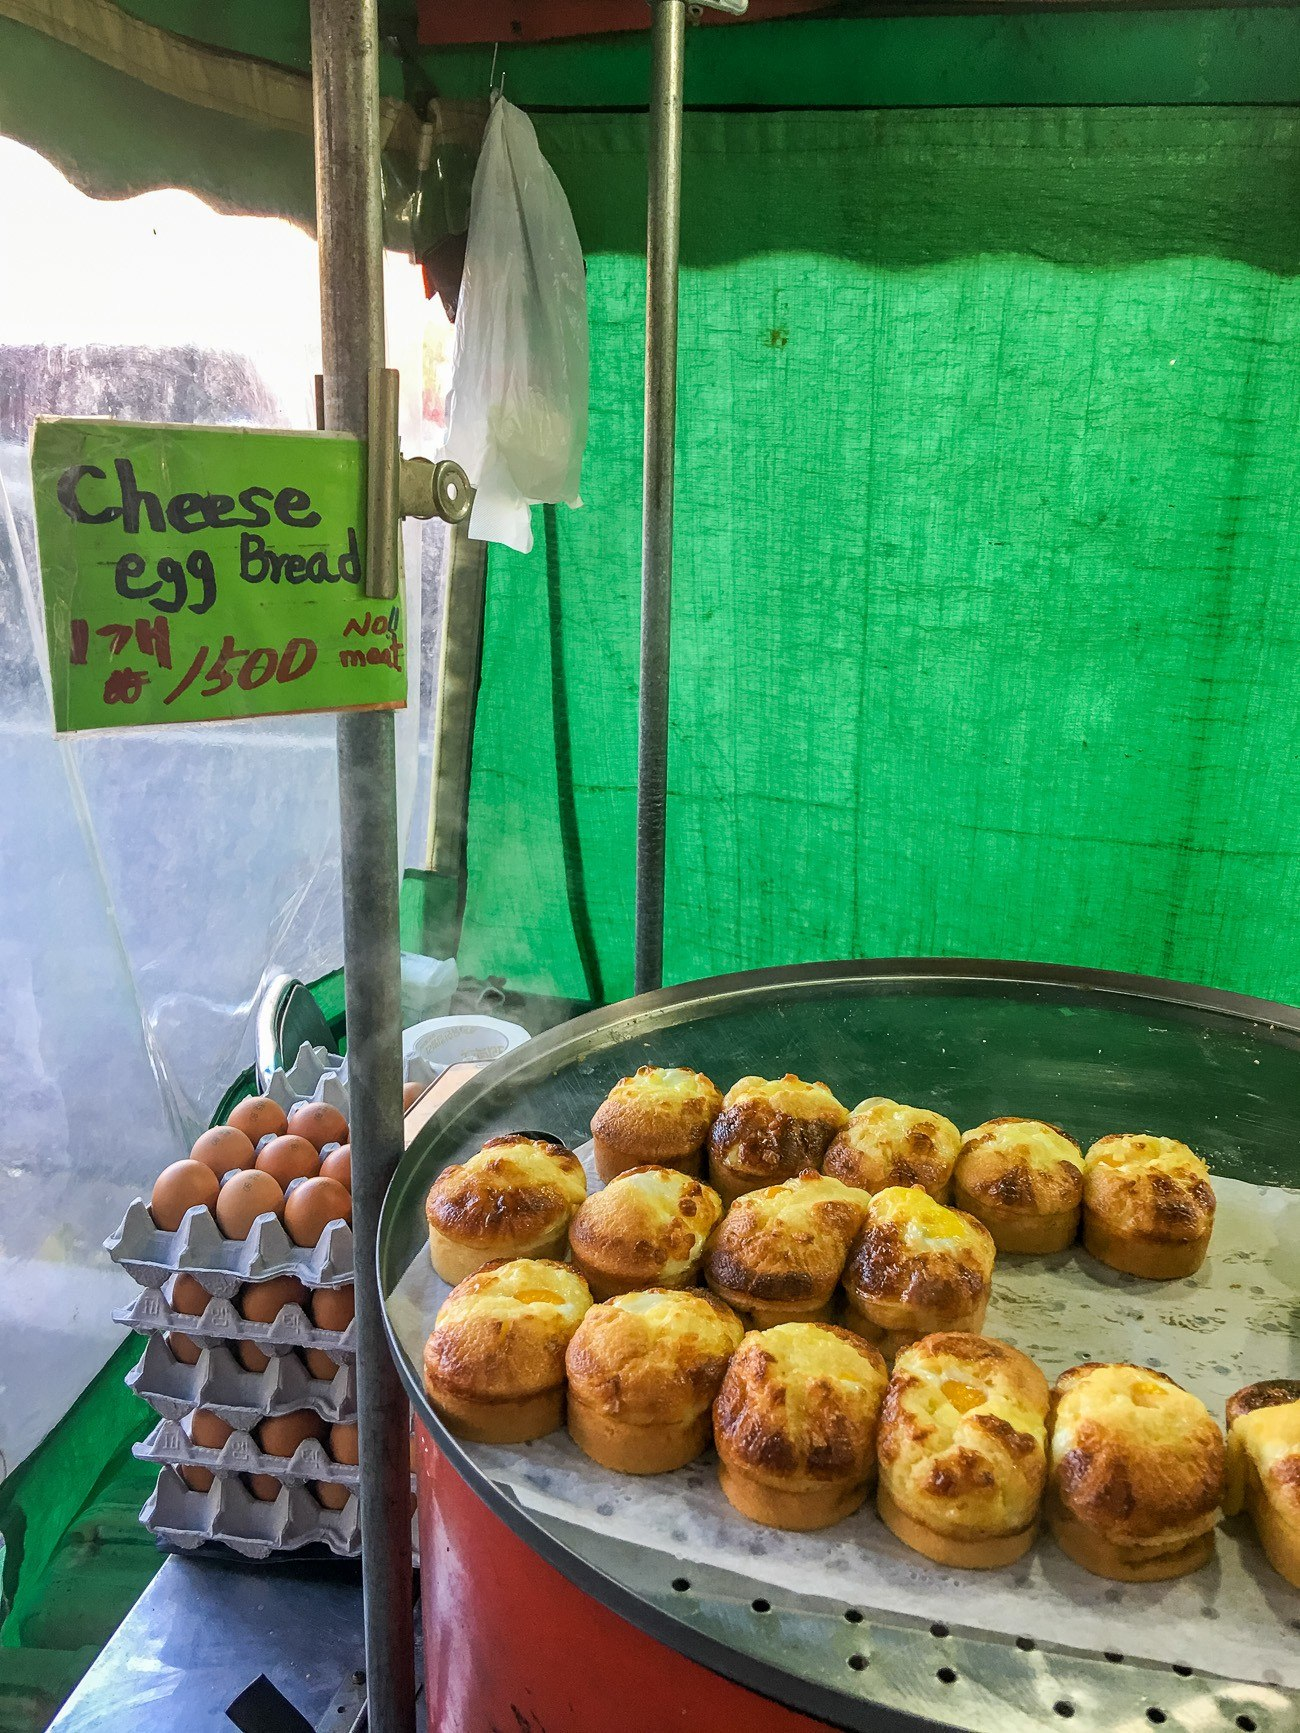 Gyeranppang (egg bread) is a popular street food in Seoul.